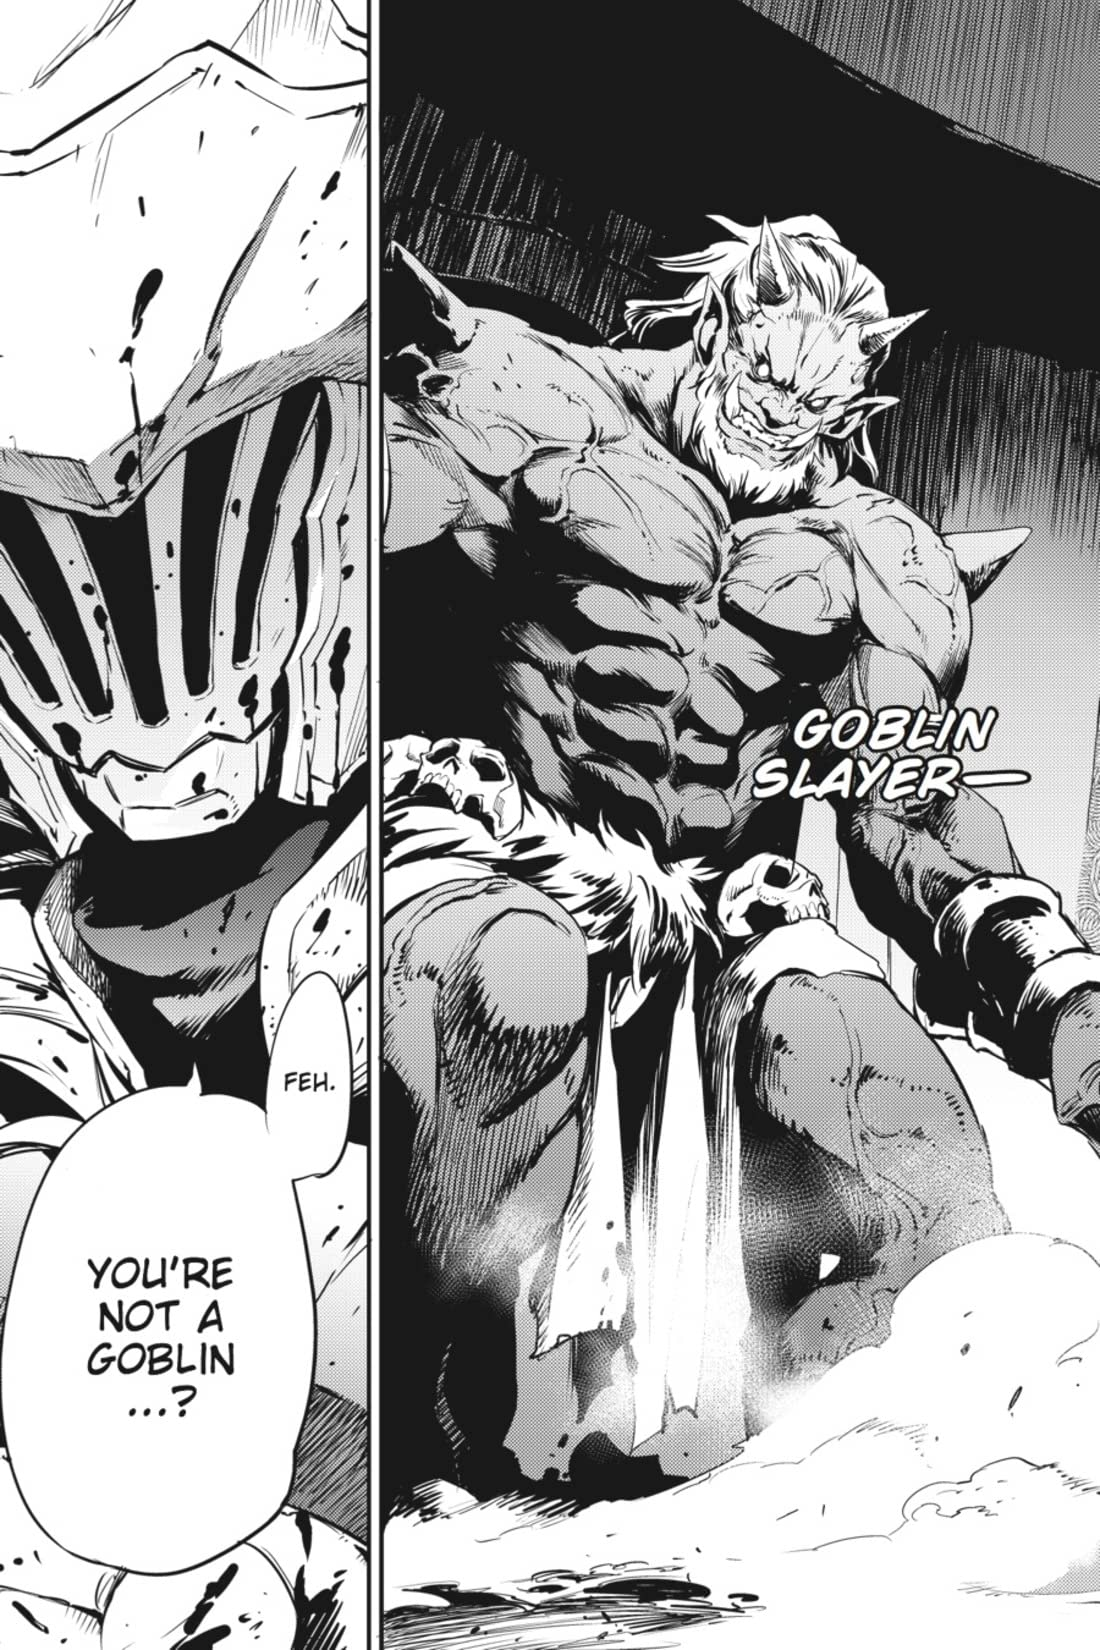 Goblin Slayer #8